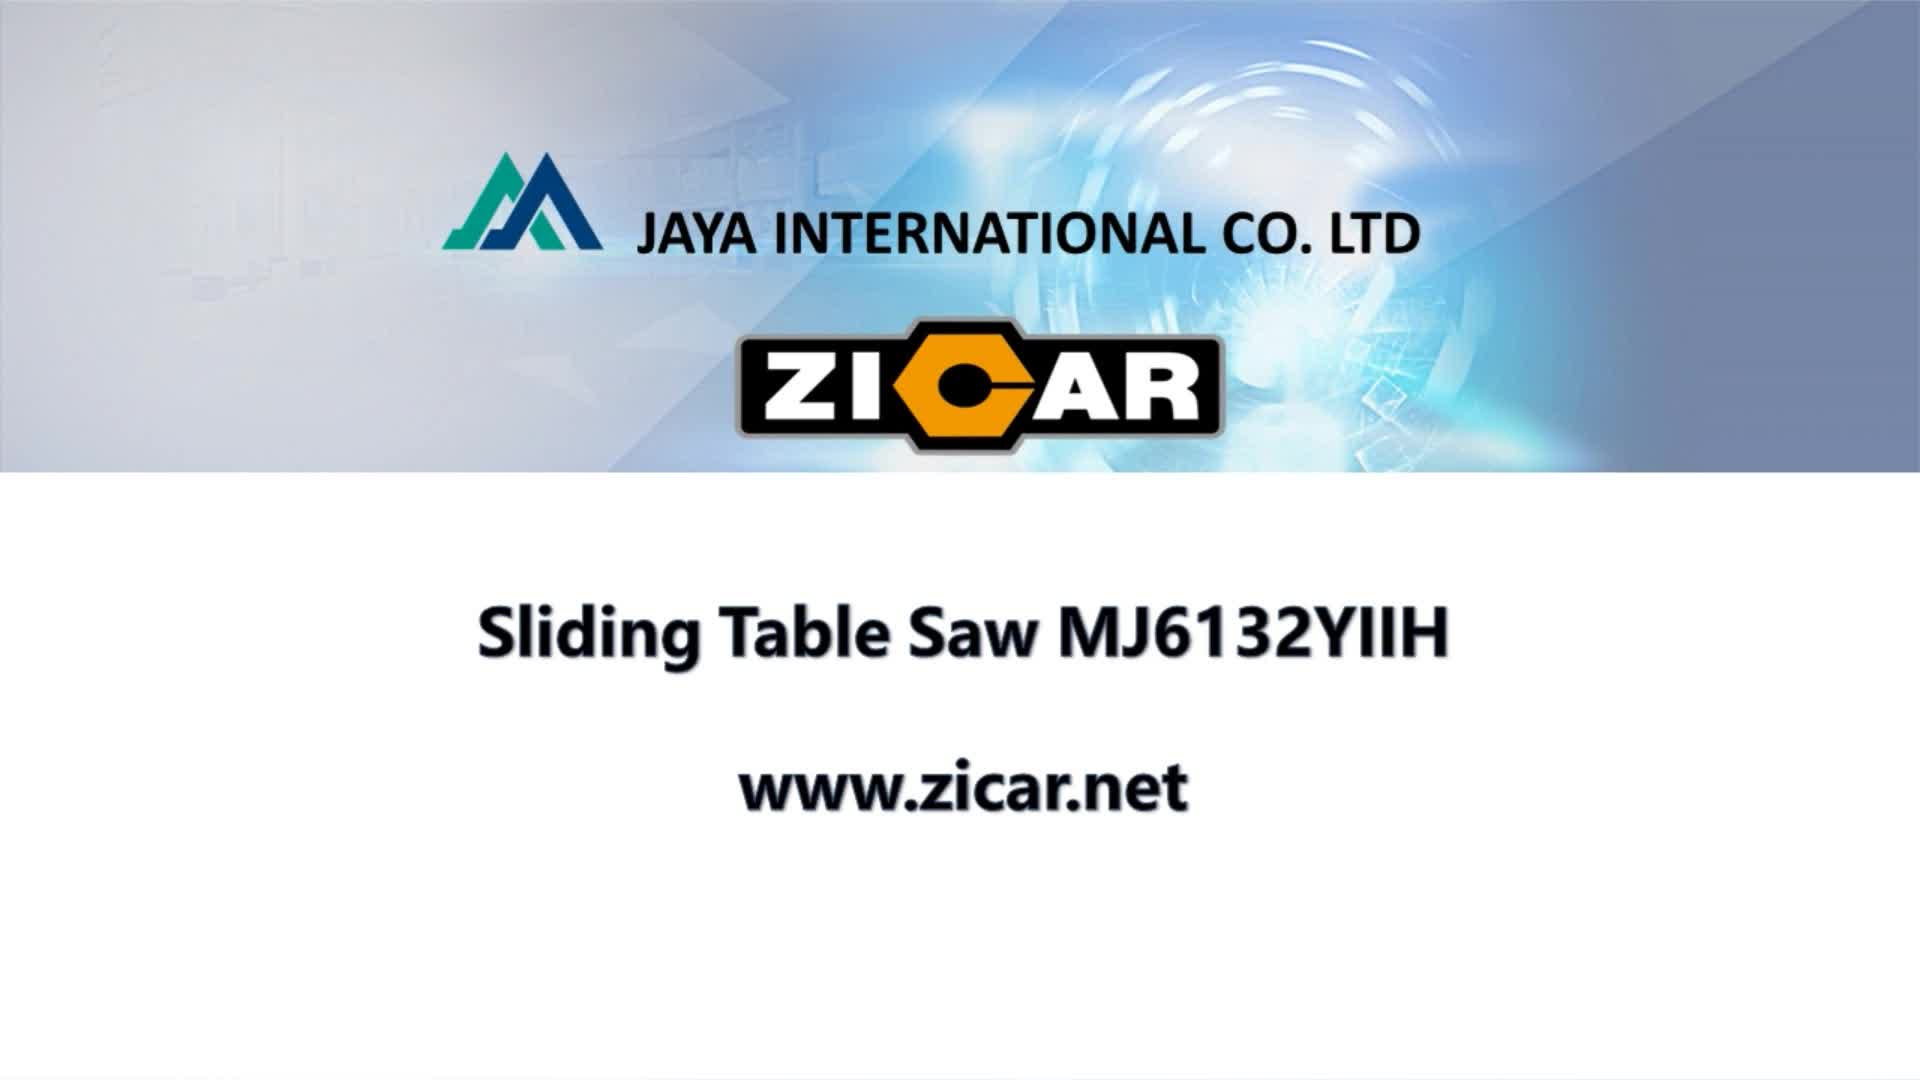 ZICAR MJ6132YIIH 3200mm high quality of sliding table panel saw machine with woodworking